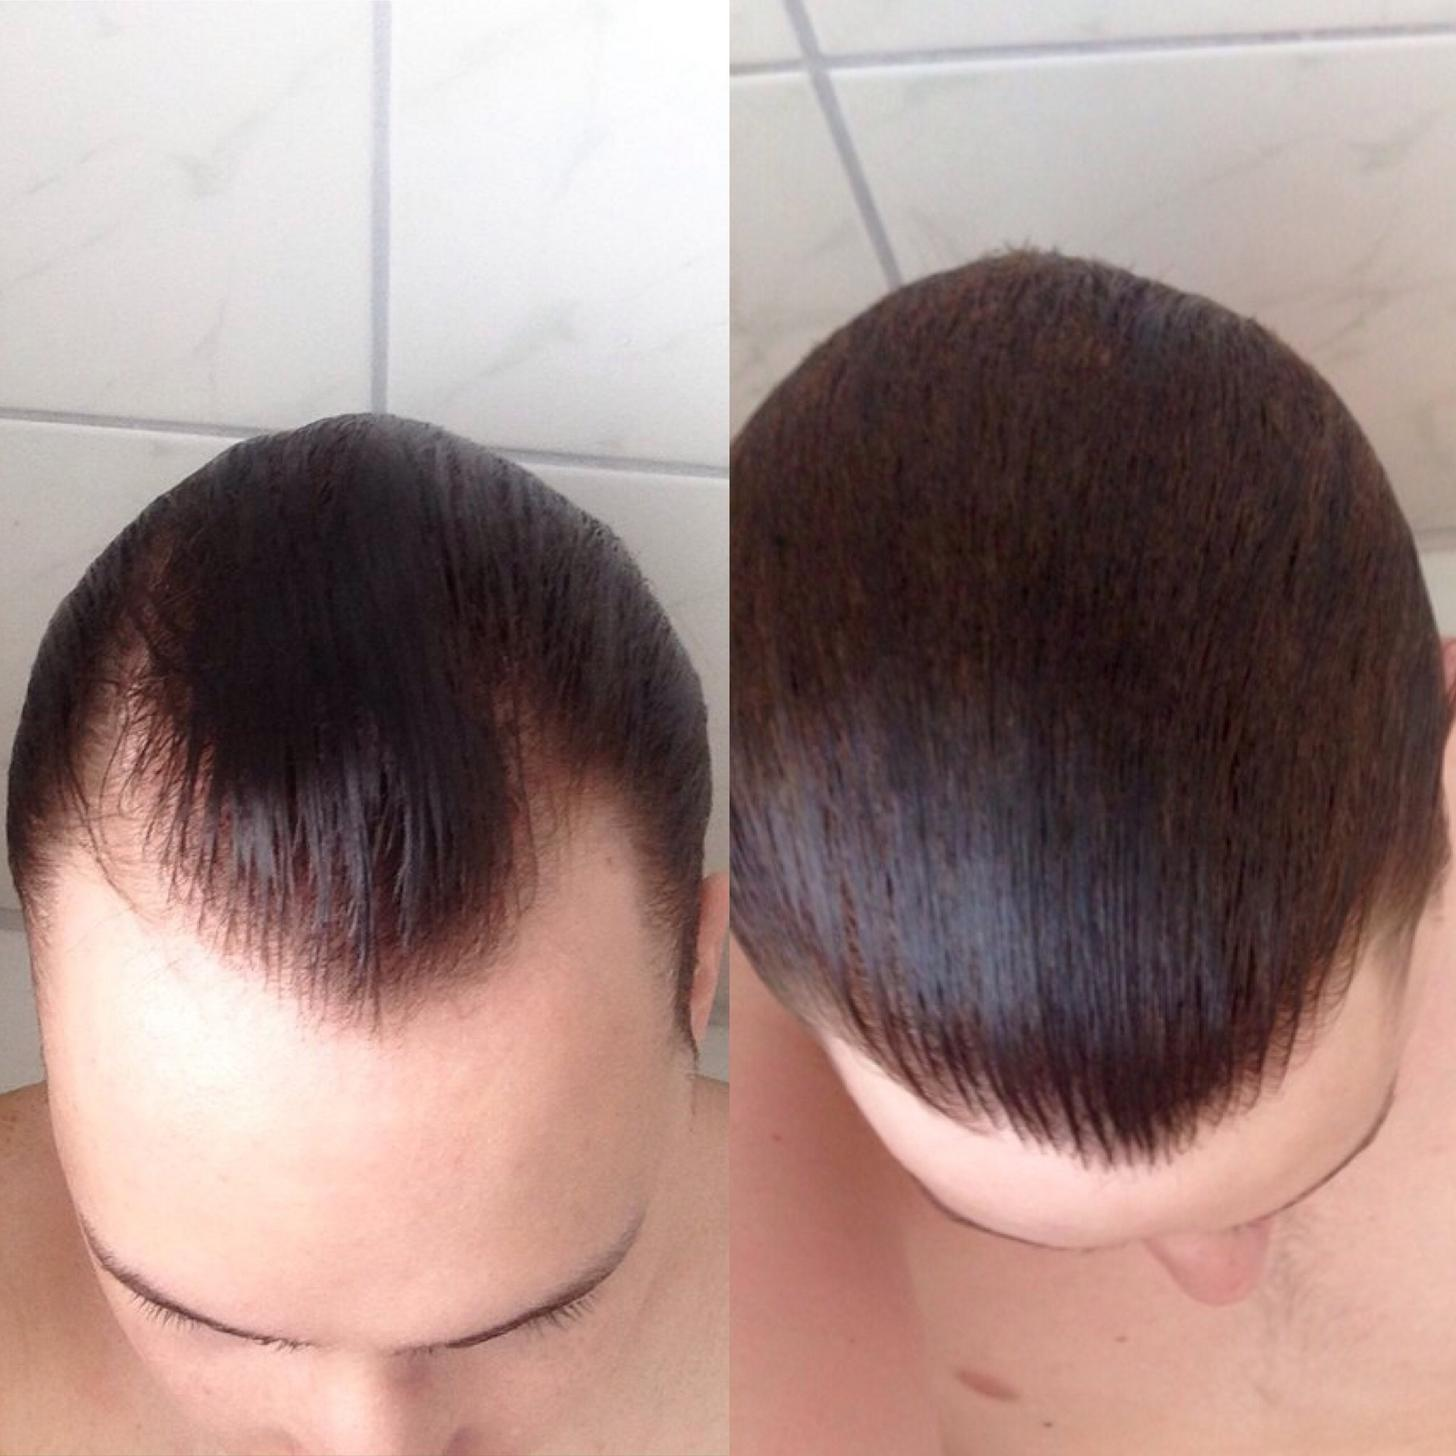 Before and after the use of Finasteride